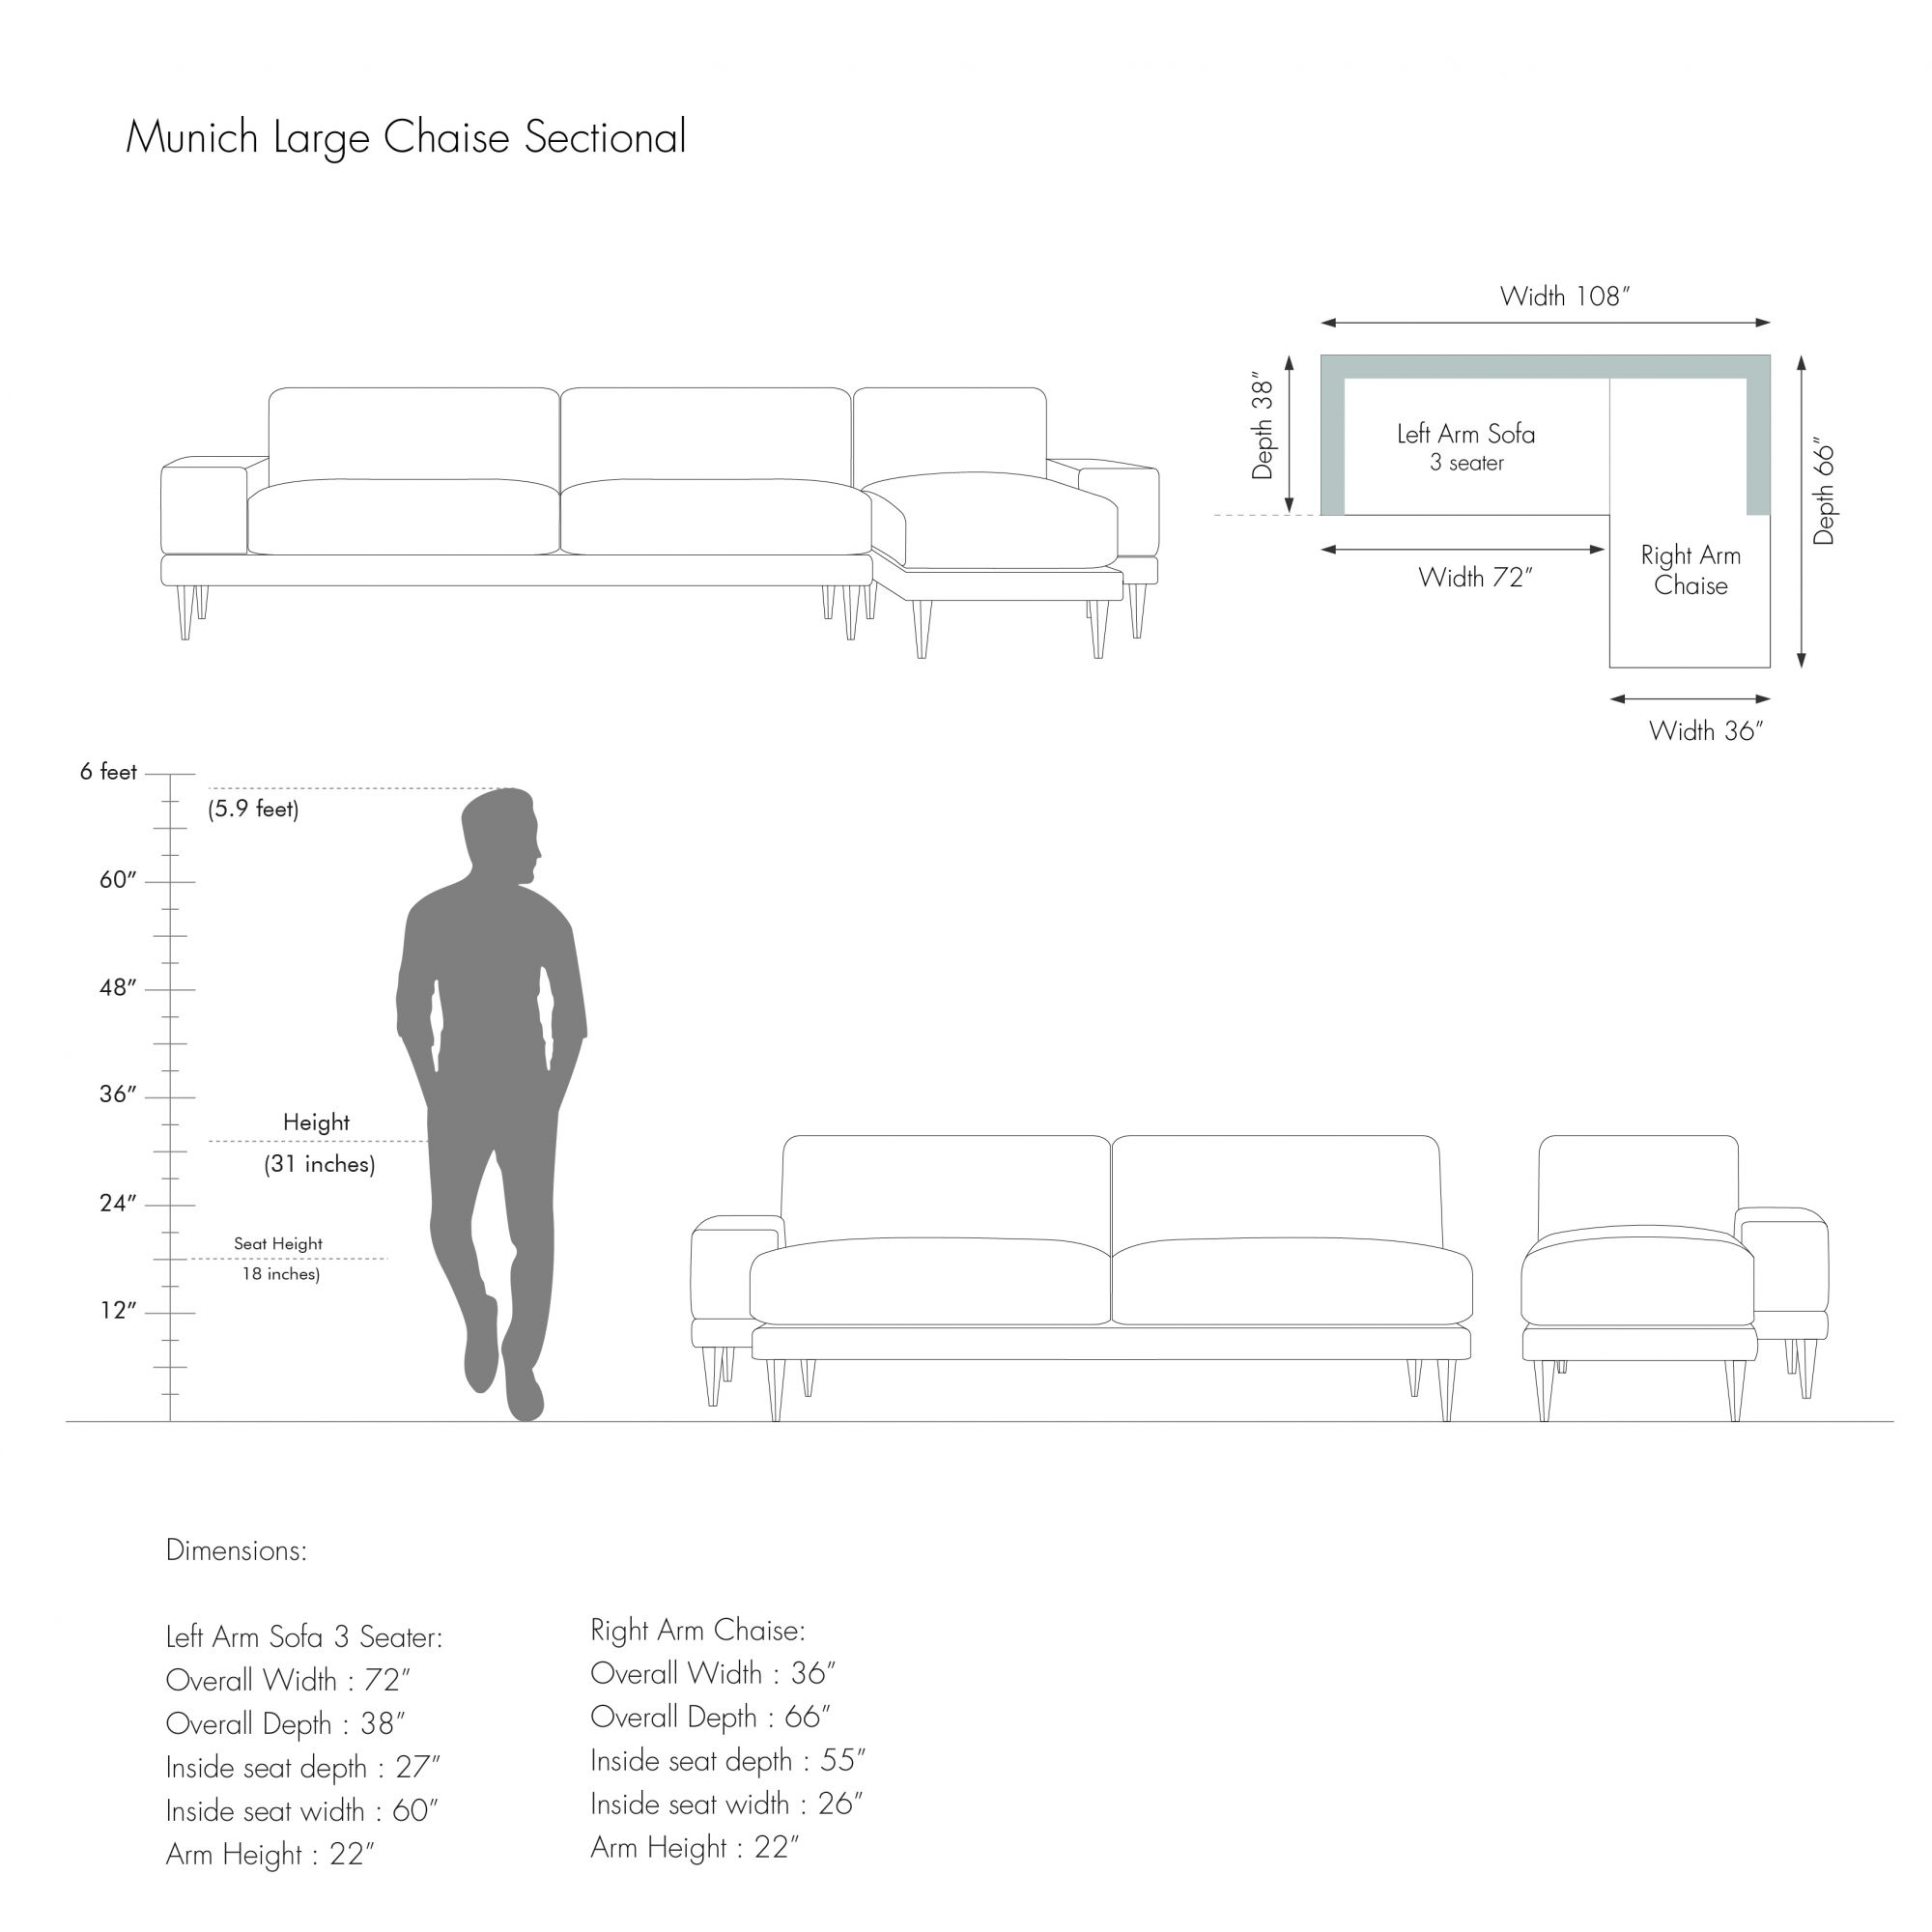 Large Chaise Sectional - Munich